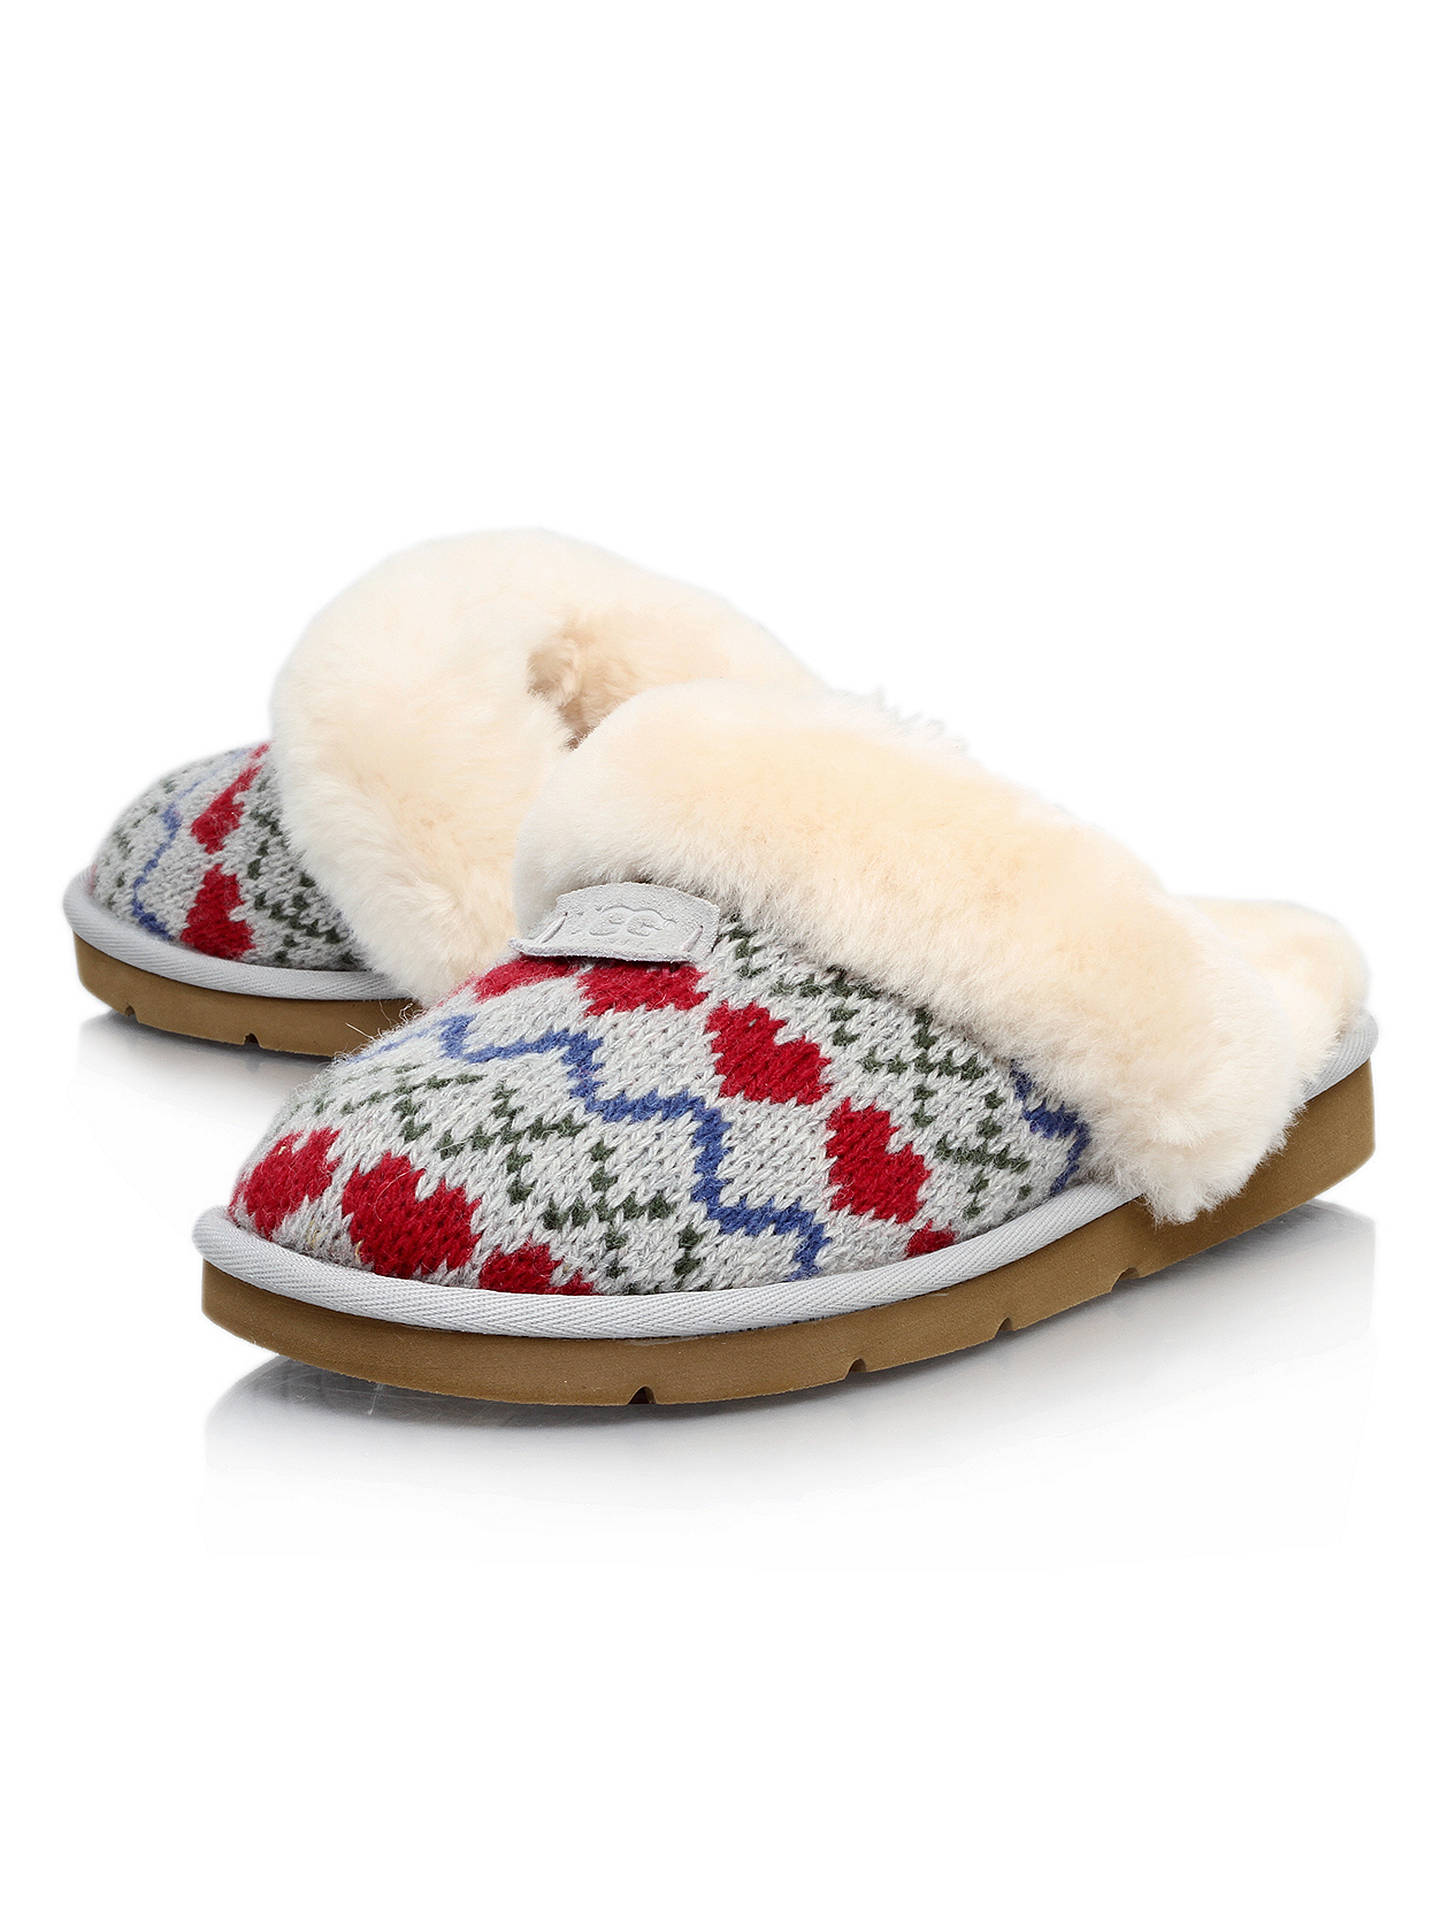 b1b06433e83 UGG Cosy Knit Heart Printed Sheepskin Slippers, Grey at John Lewis ...